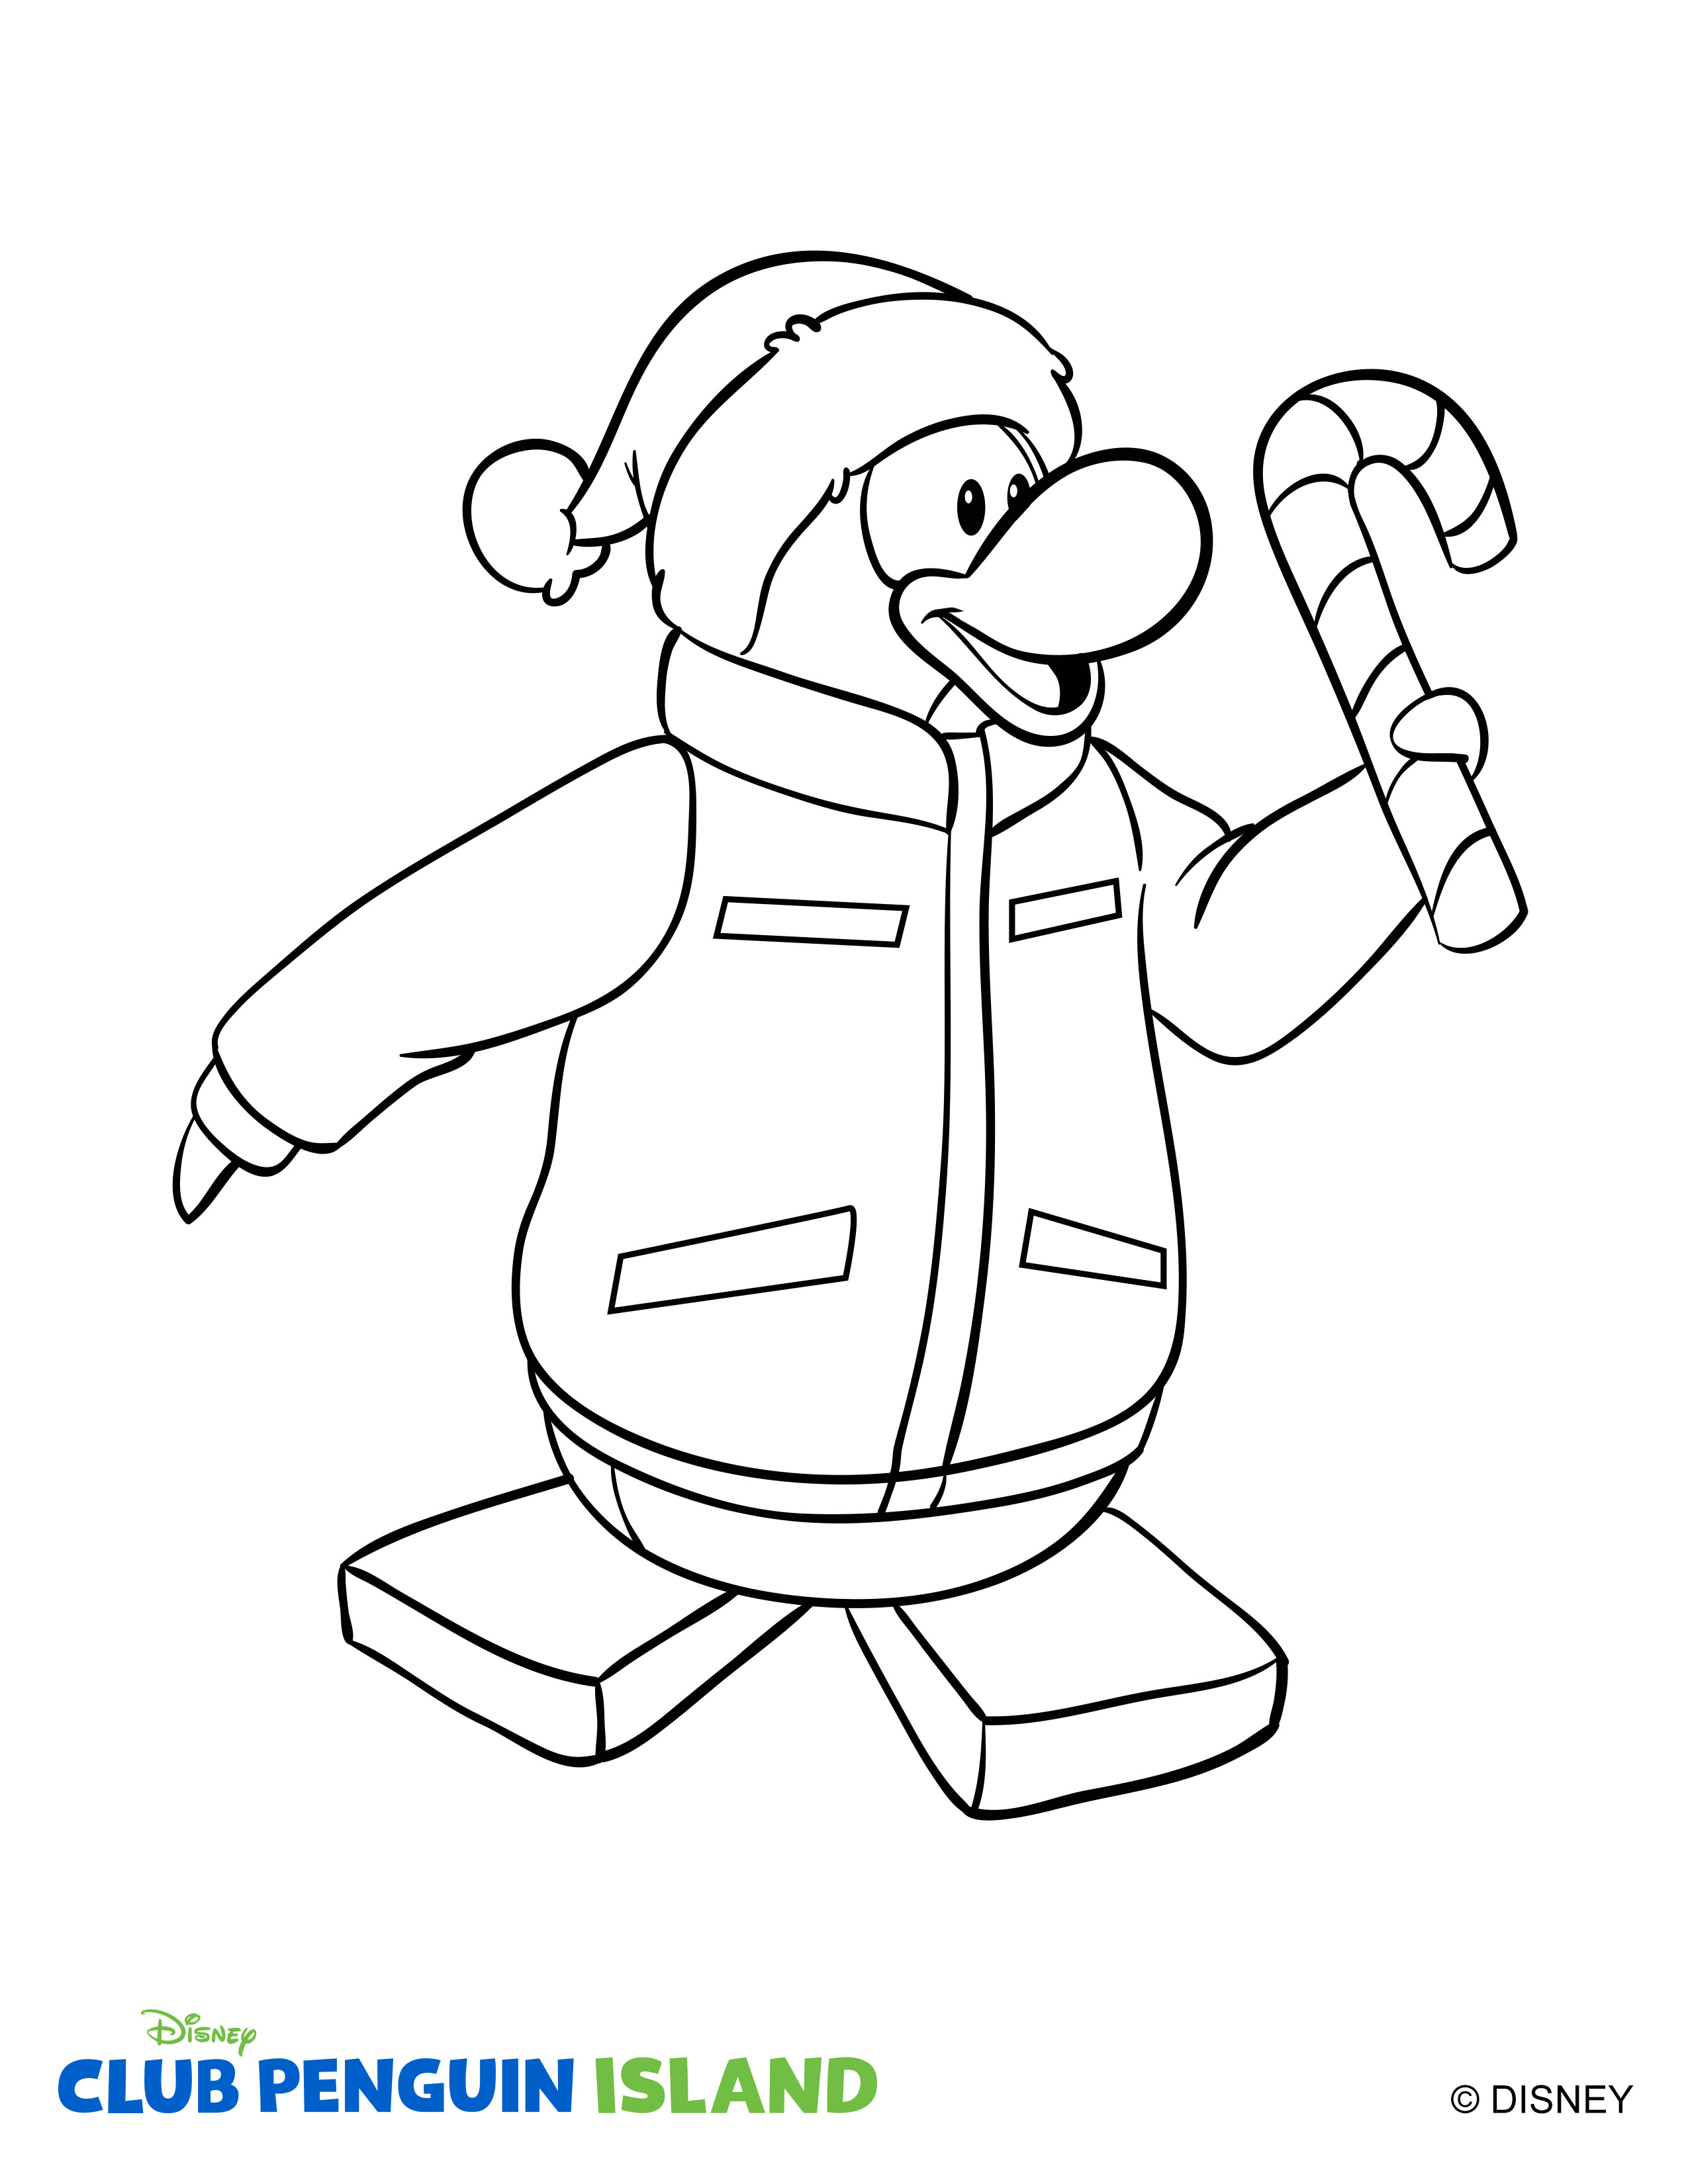 Club Penguin Drawing at GetDrawings.com | Free for personal use Club ...